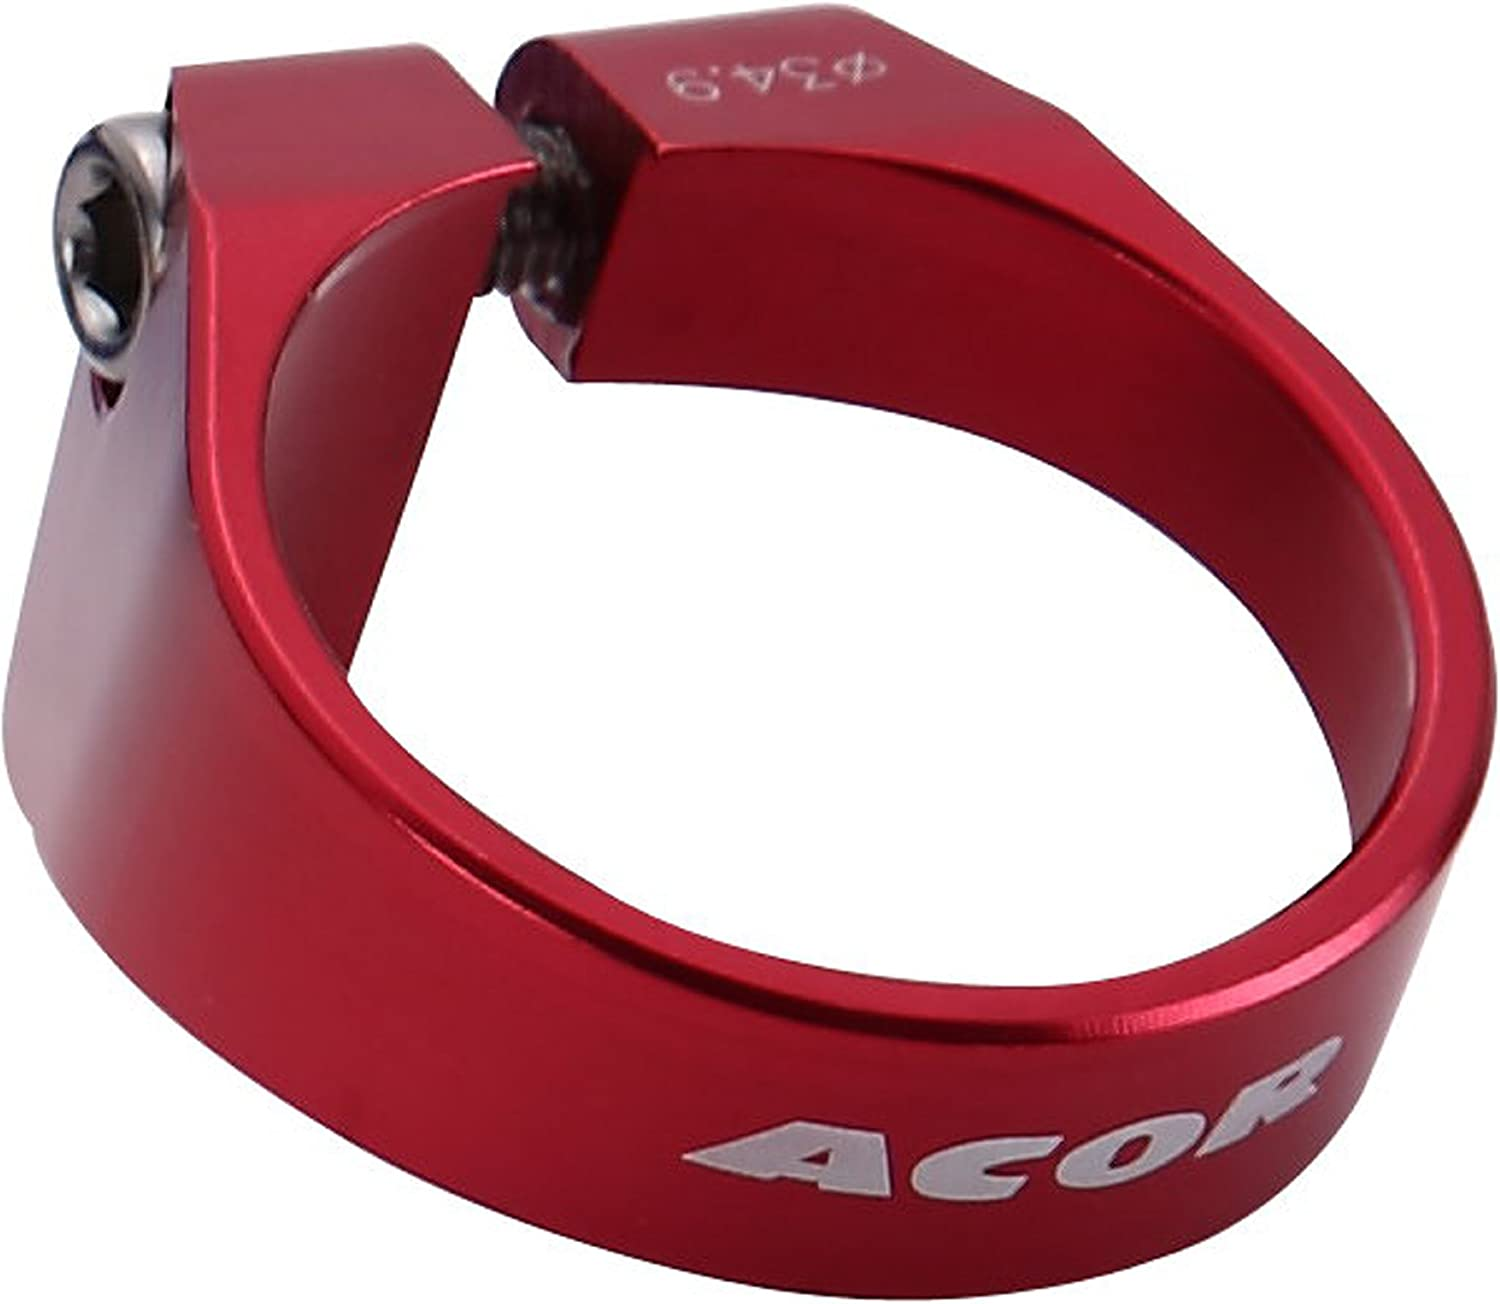 34.9mm Lightweight Alloy Seat Clamp Red